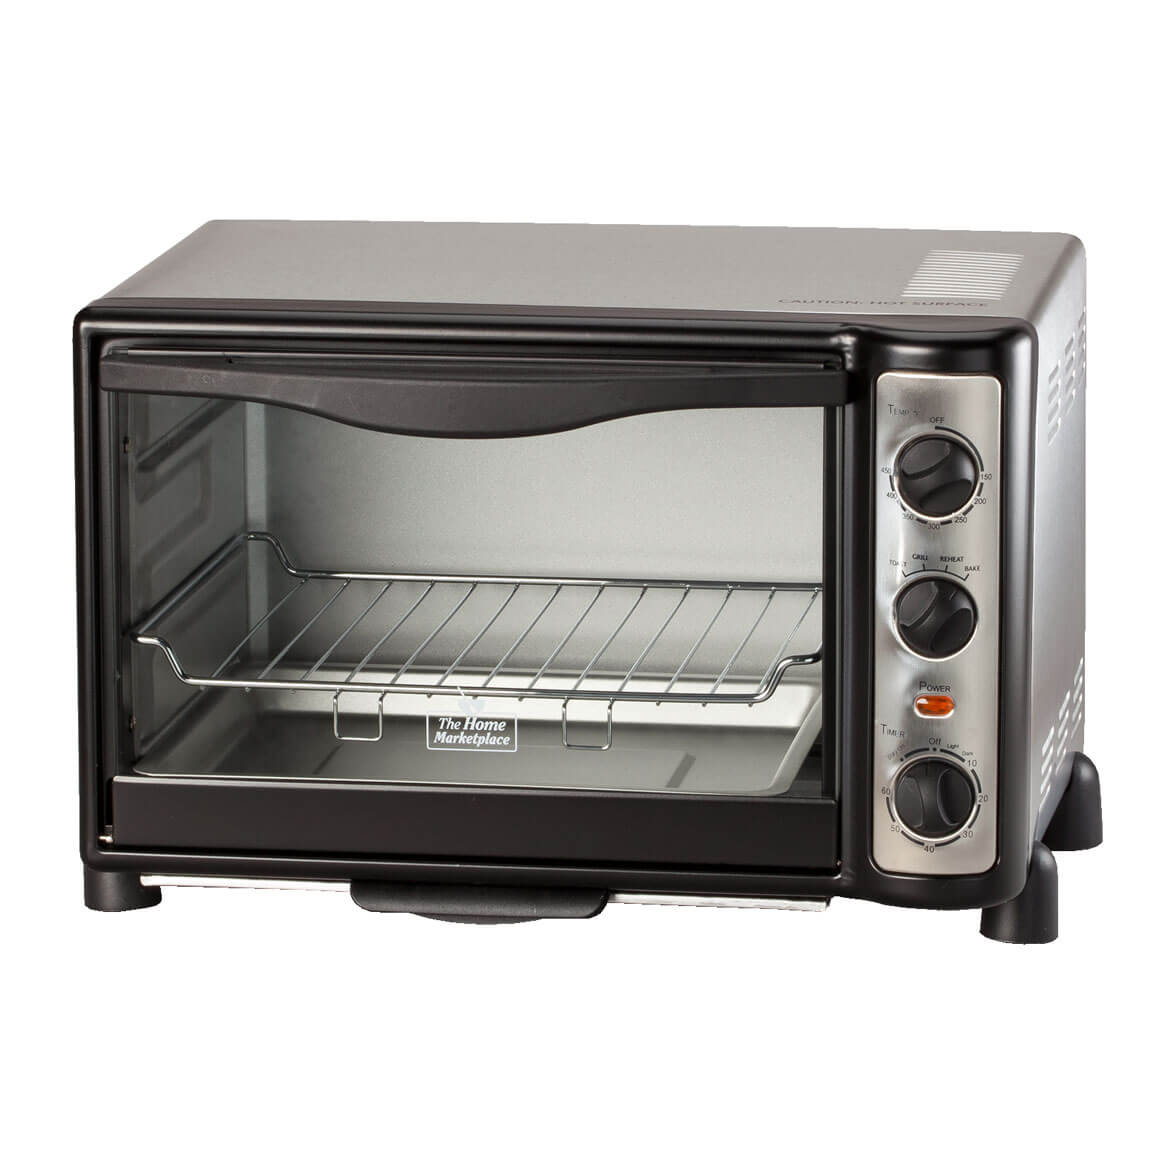 Toaster Oven by The Home Marketplace - Toaster Oven ...